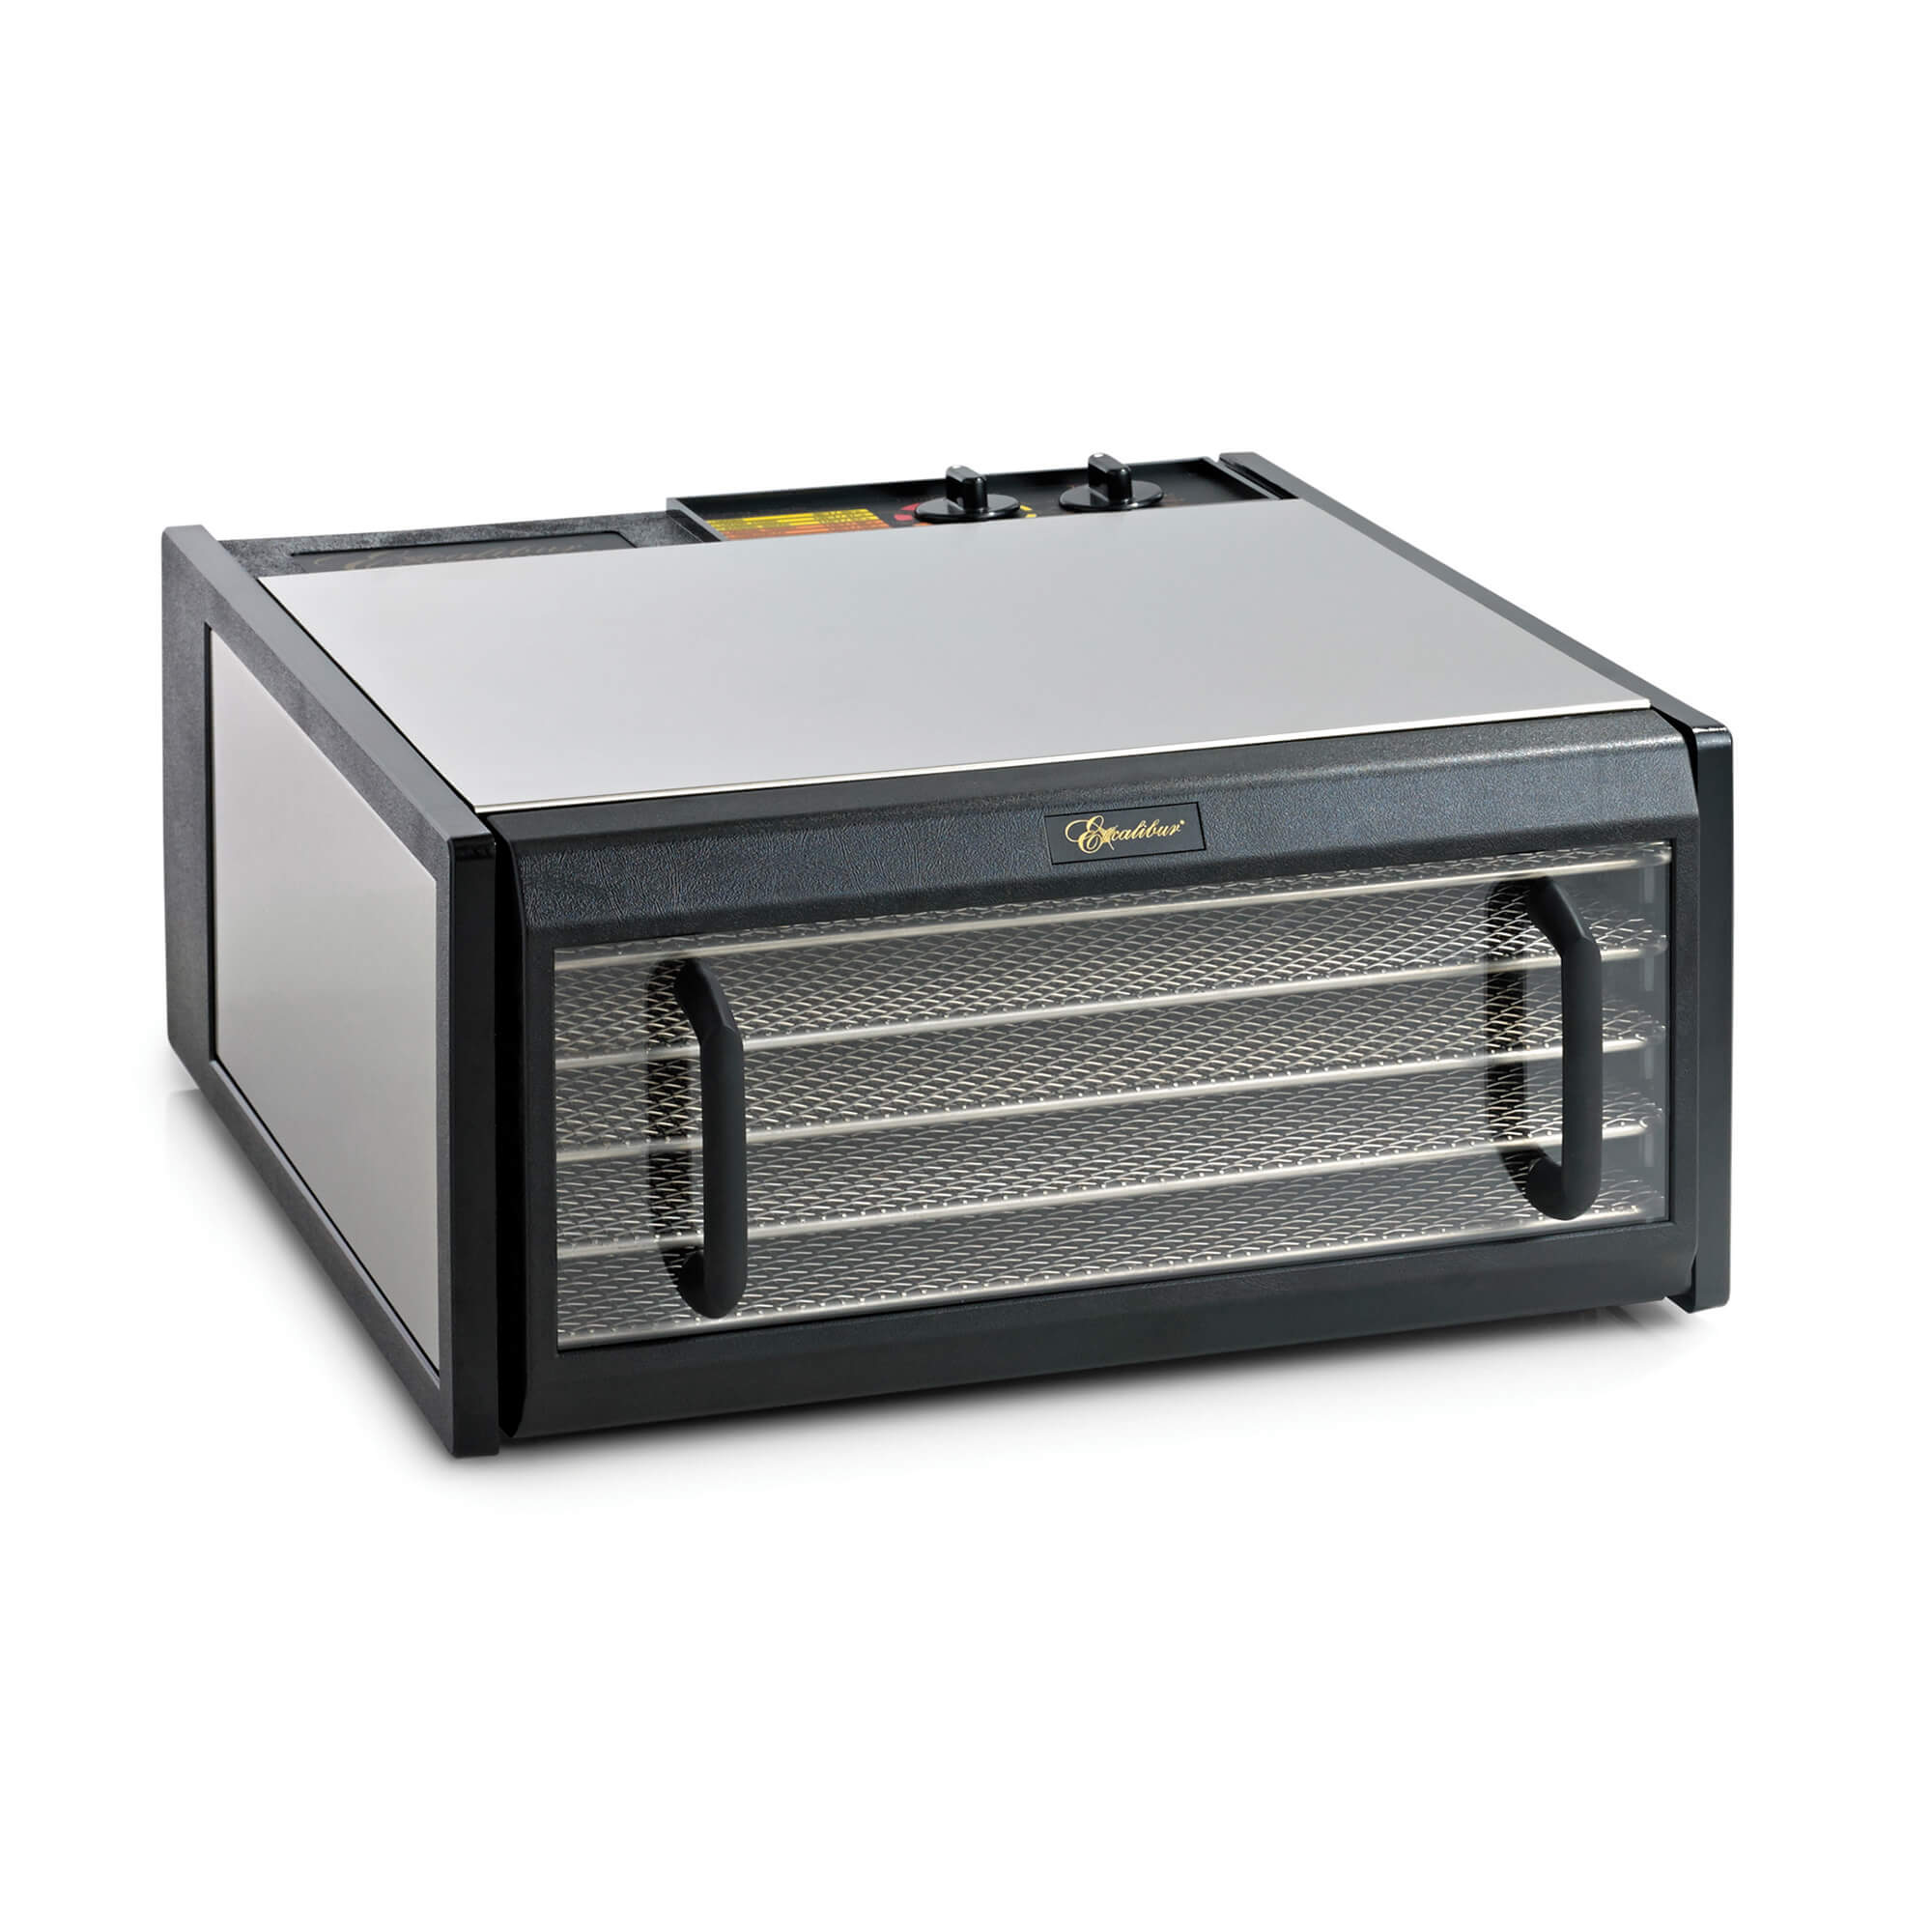 Excalibur D502CDSHD stainless steel 5 tray dehydrator with door closed.